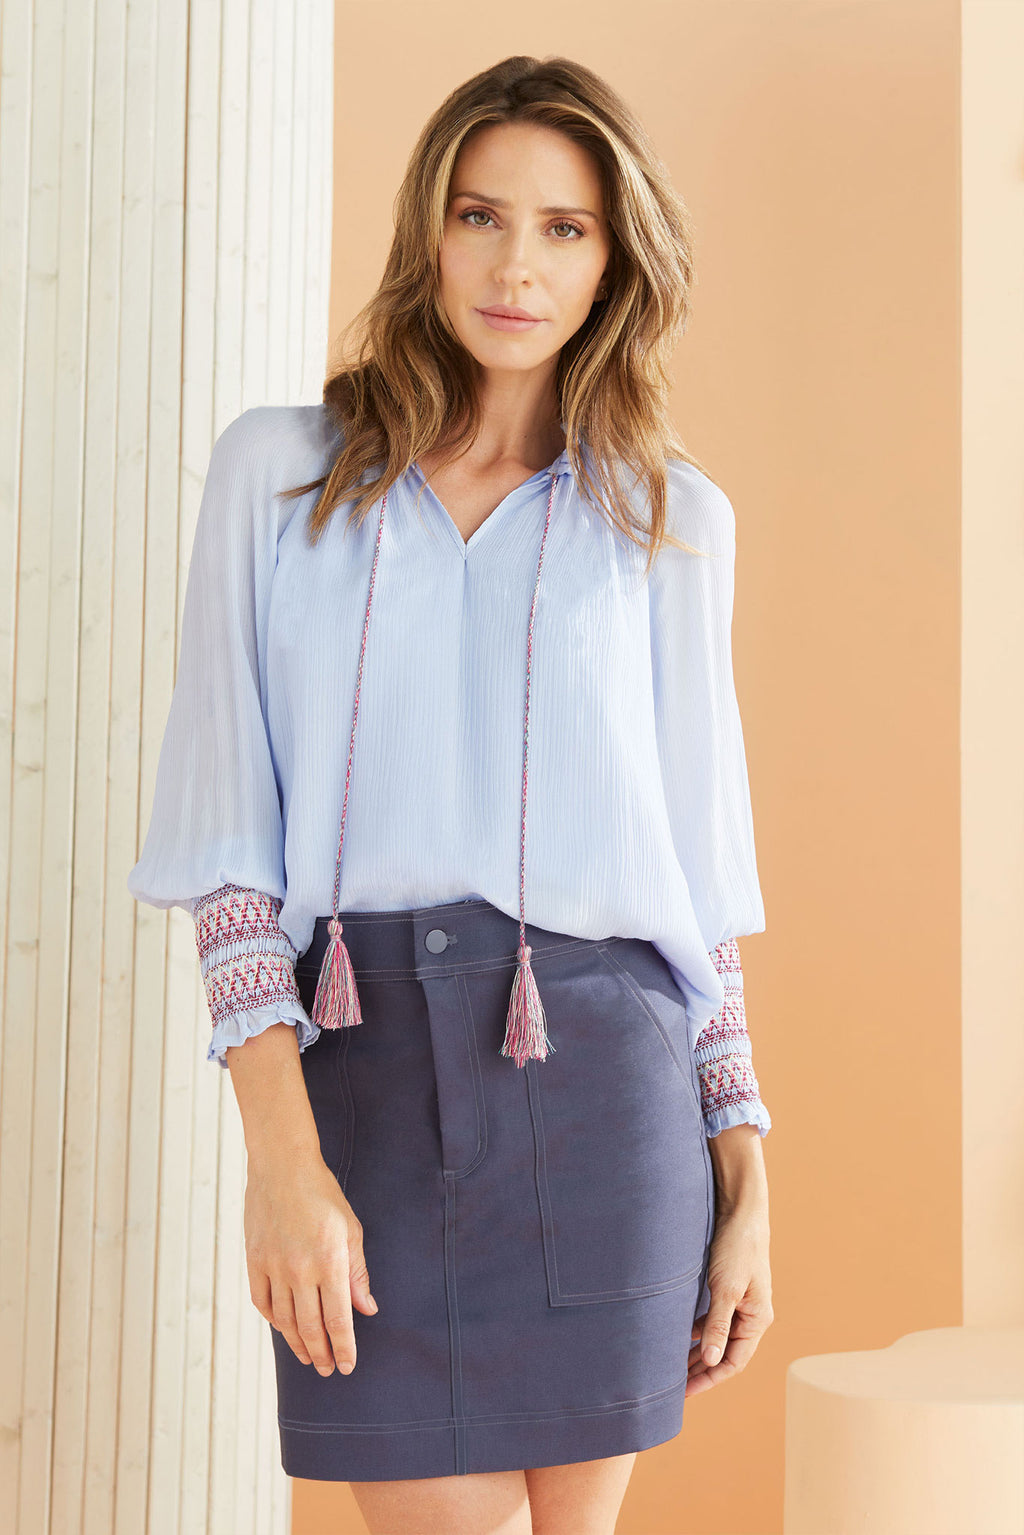 Model wearing the Carmen blouse in Periwinkle.